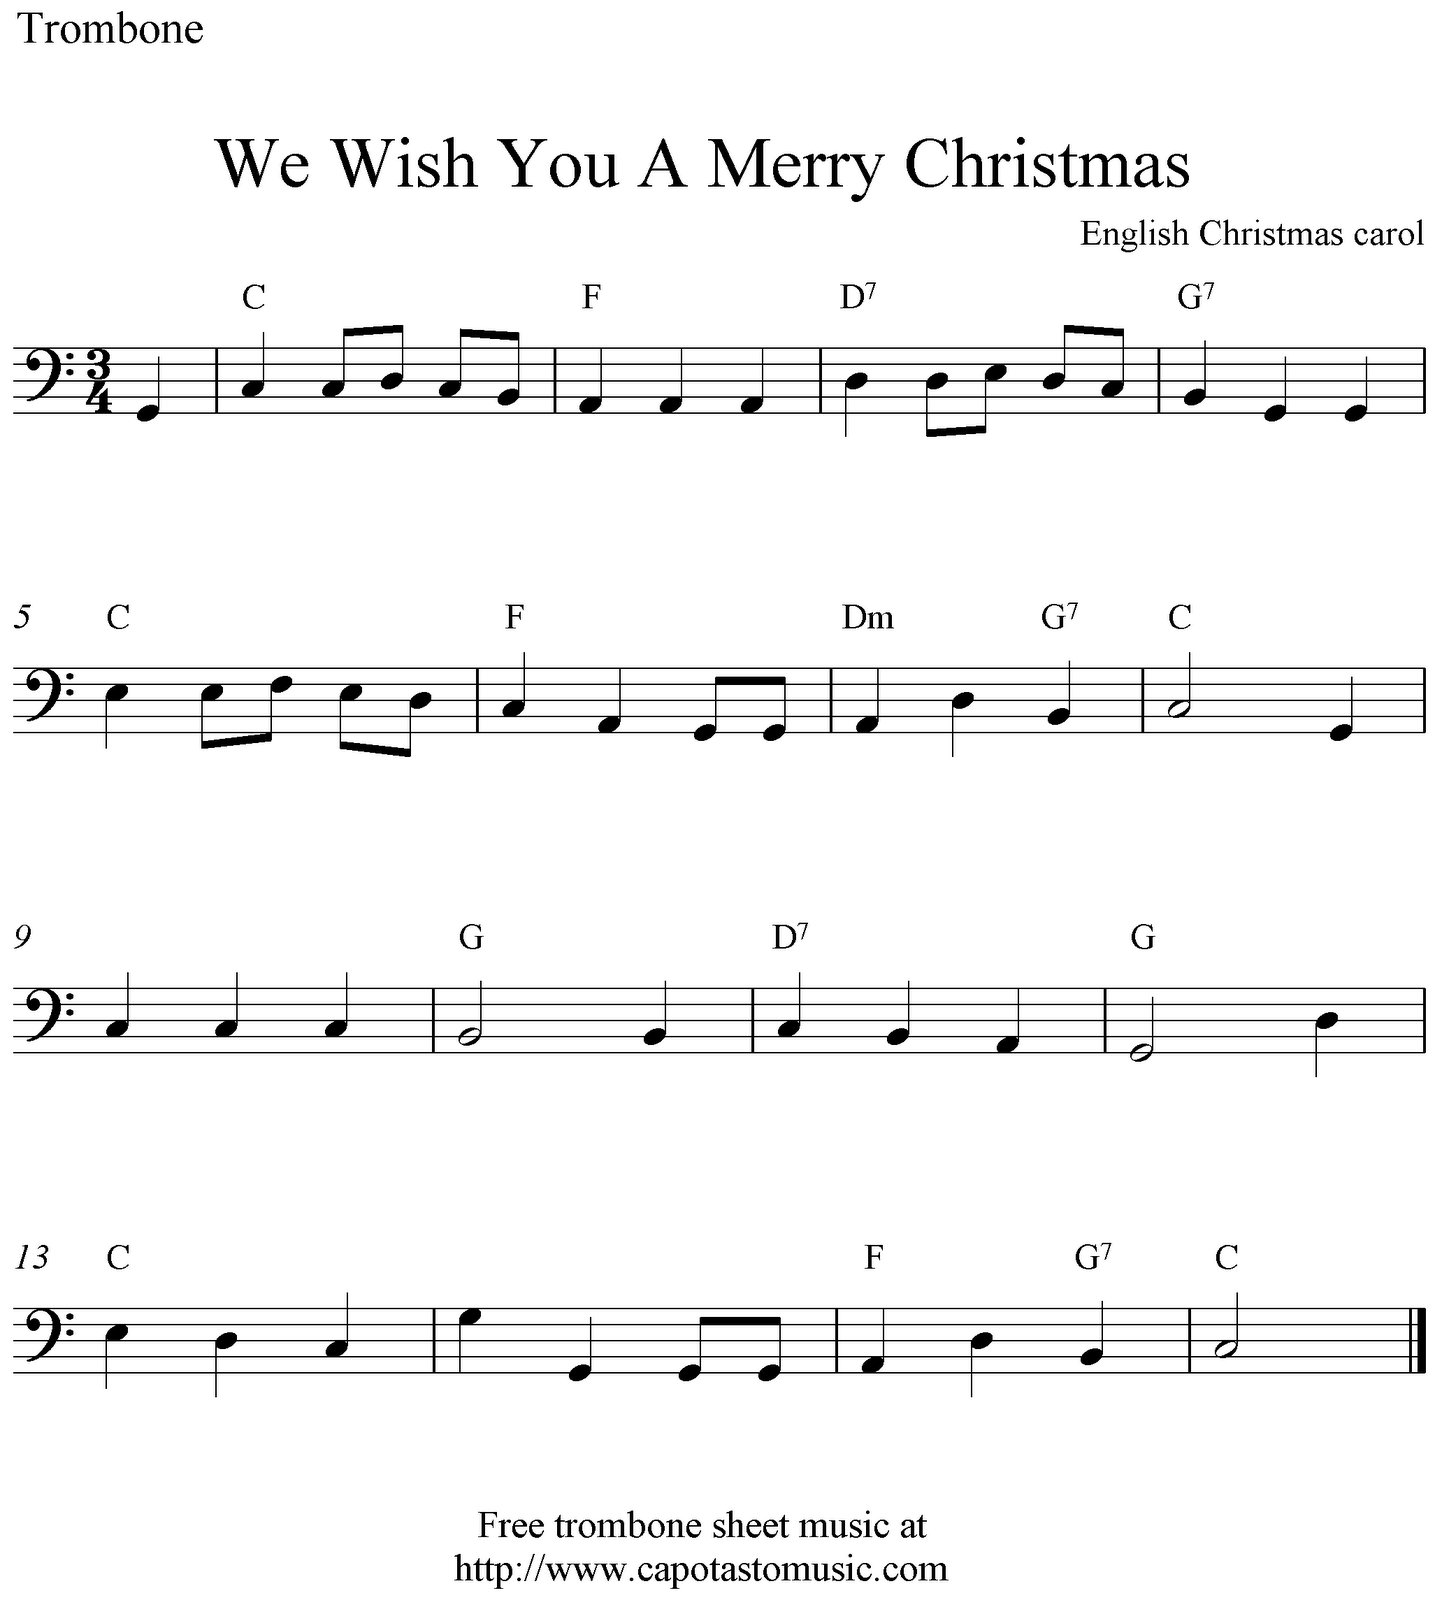 Free Christmas piano sheet music, We Wish You A Merry Christmas